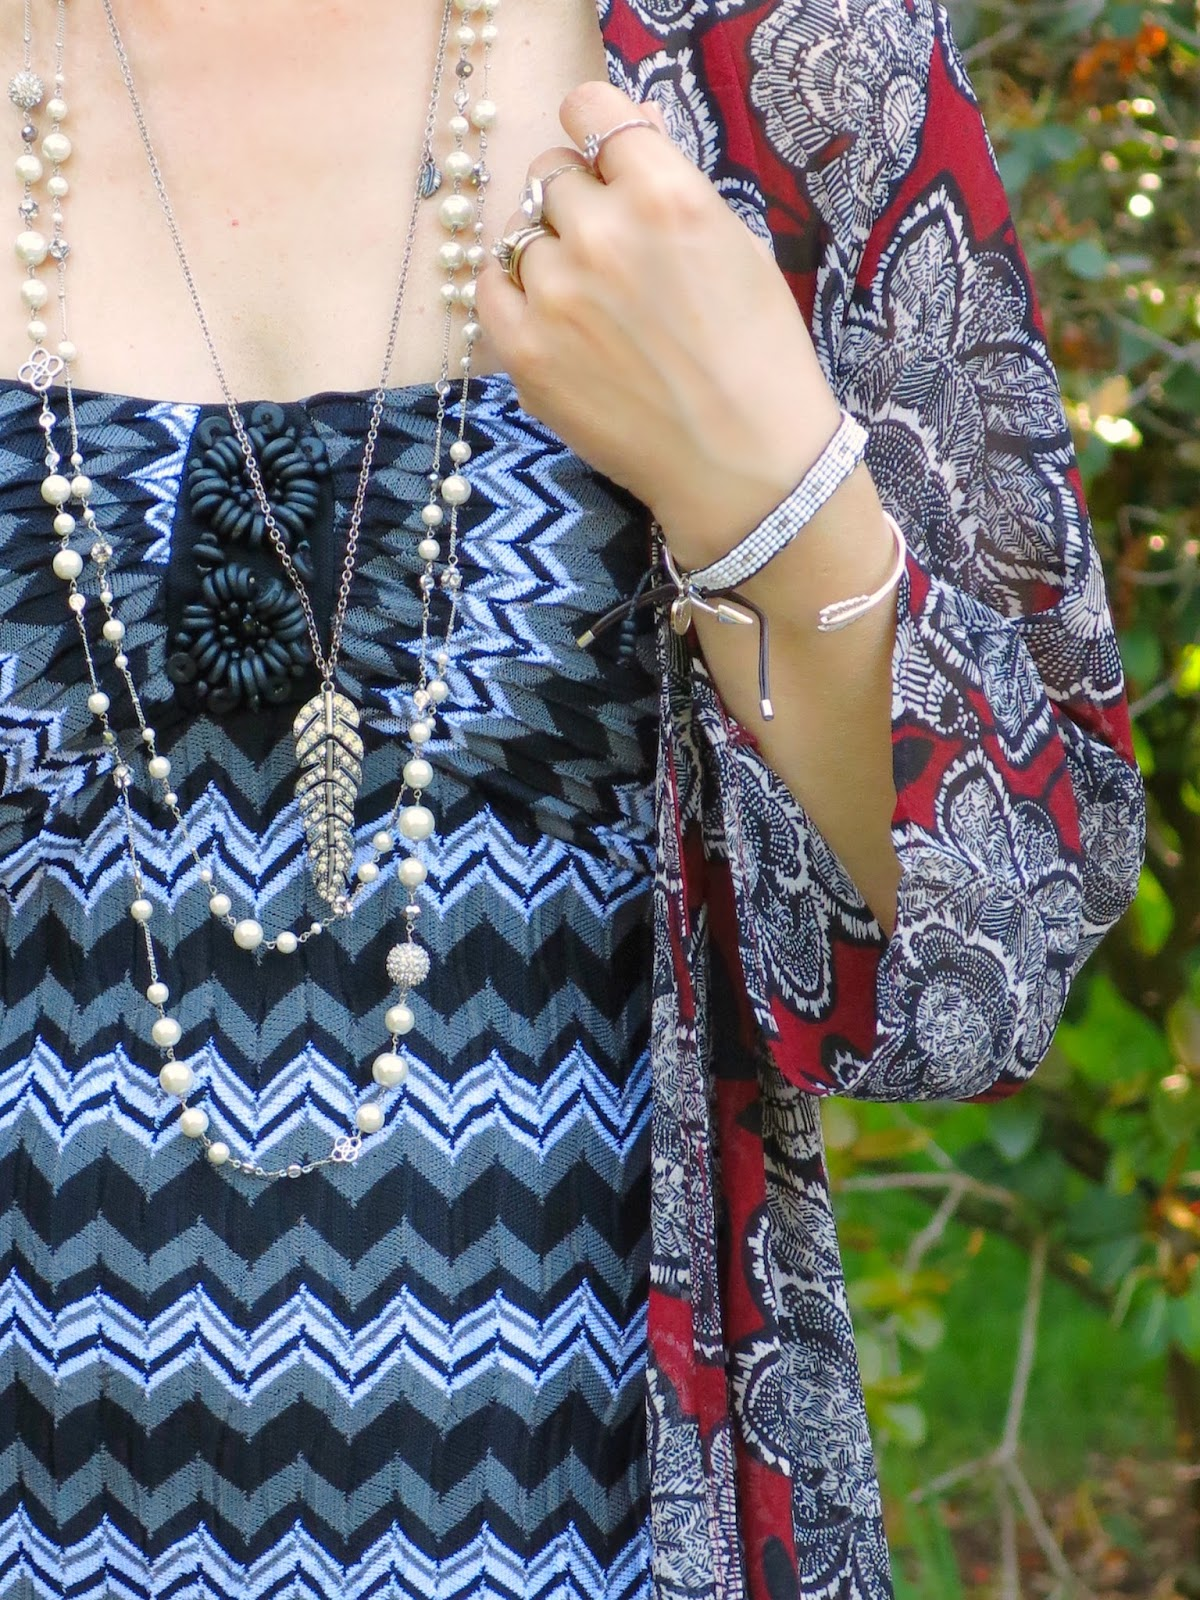 A striped maxi dress with a floral chiffon kimono and accessories